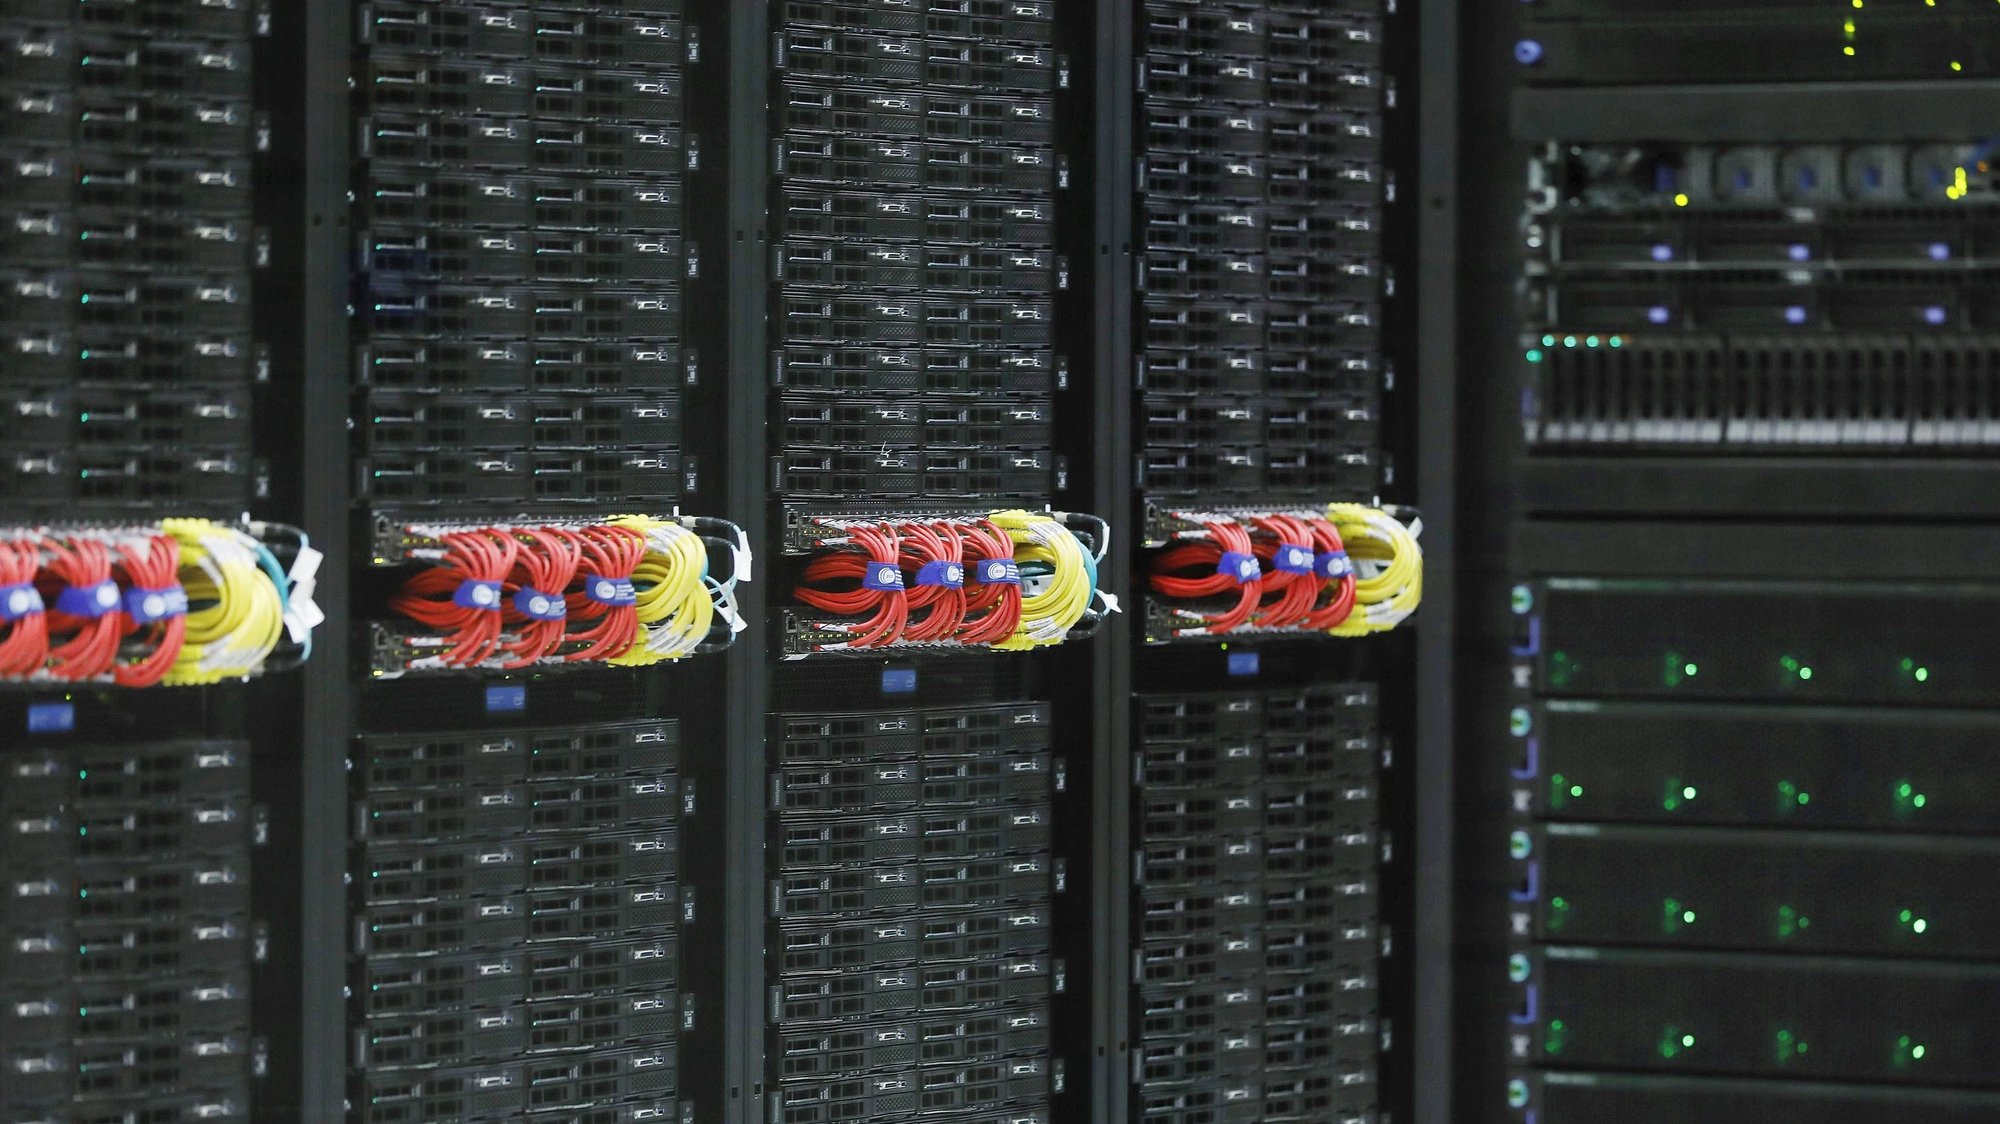 epa06055836 The new 'MareNostrum 4' super computer during its presentation at Supercomputing Center in Barcelona, northeastern Spain, 29 June 2017. With a 34 million euro investment, the computer has a capacity to make 13,677 trillion operations per second. It is about 12 times more powerful than its predecessor MareNostrum 3, according to Barcelona Supercomputing Center (BSC).  EPA/Andreu Dalmau